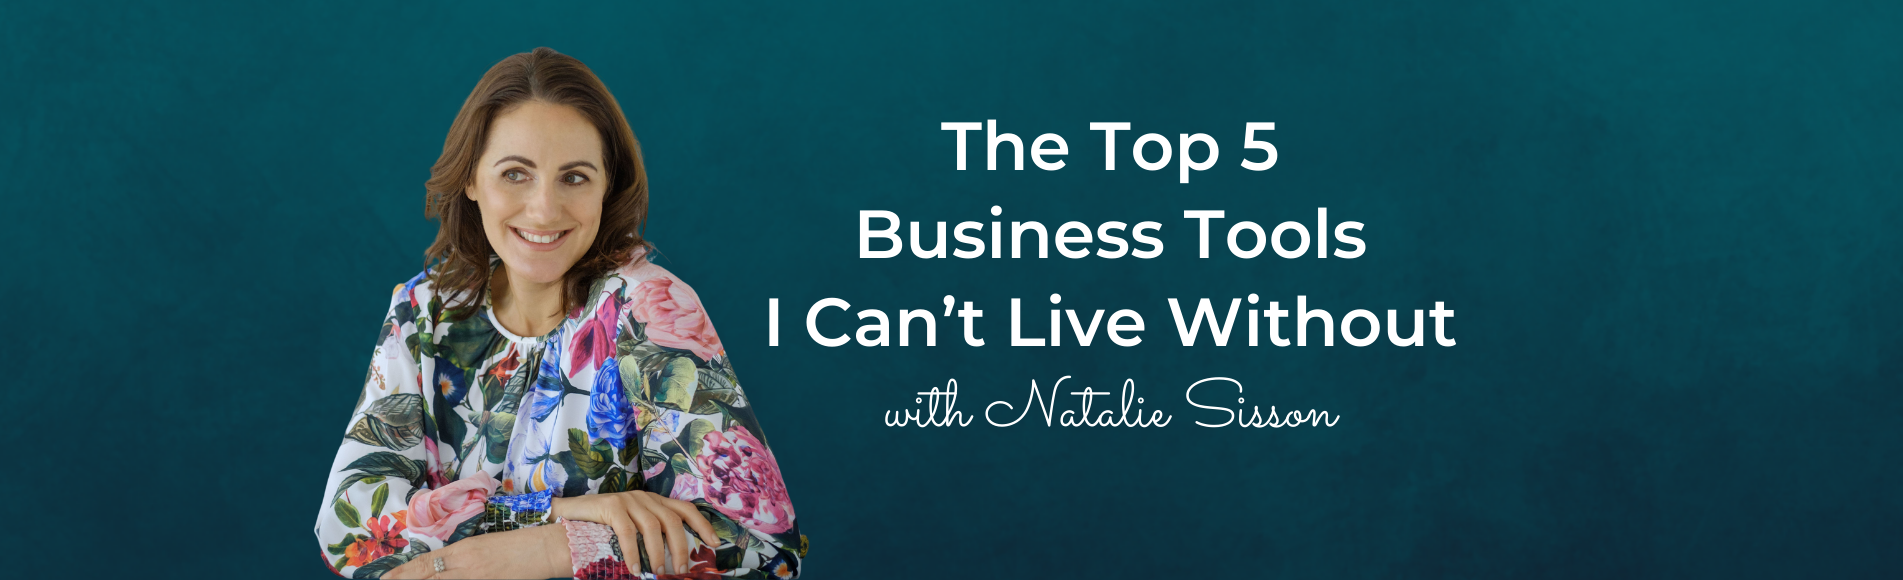 Eps 127: The Top 5 Business Tools I Can't Live Without